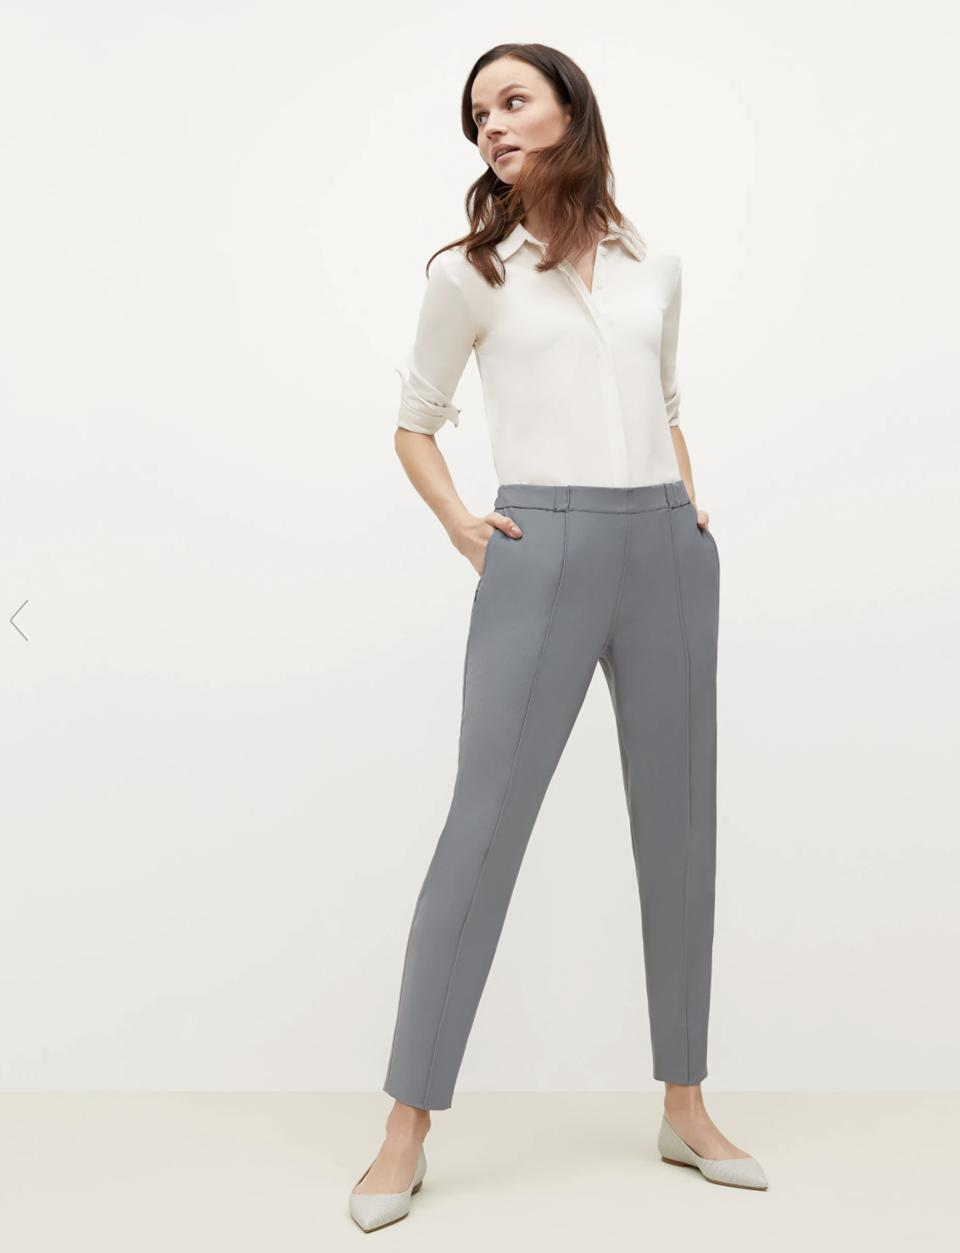 The Best Suit For Women: The Colby Jogger—OrigamiTech - Dusky Blue